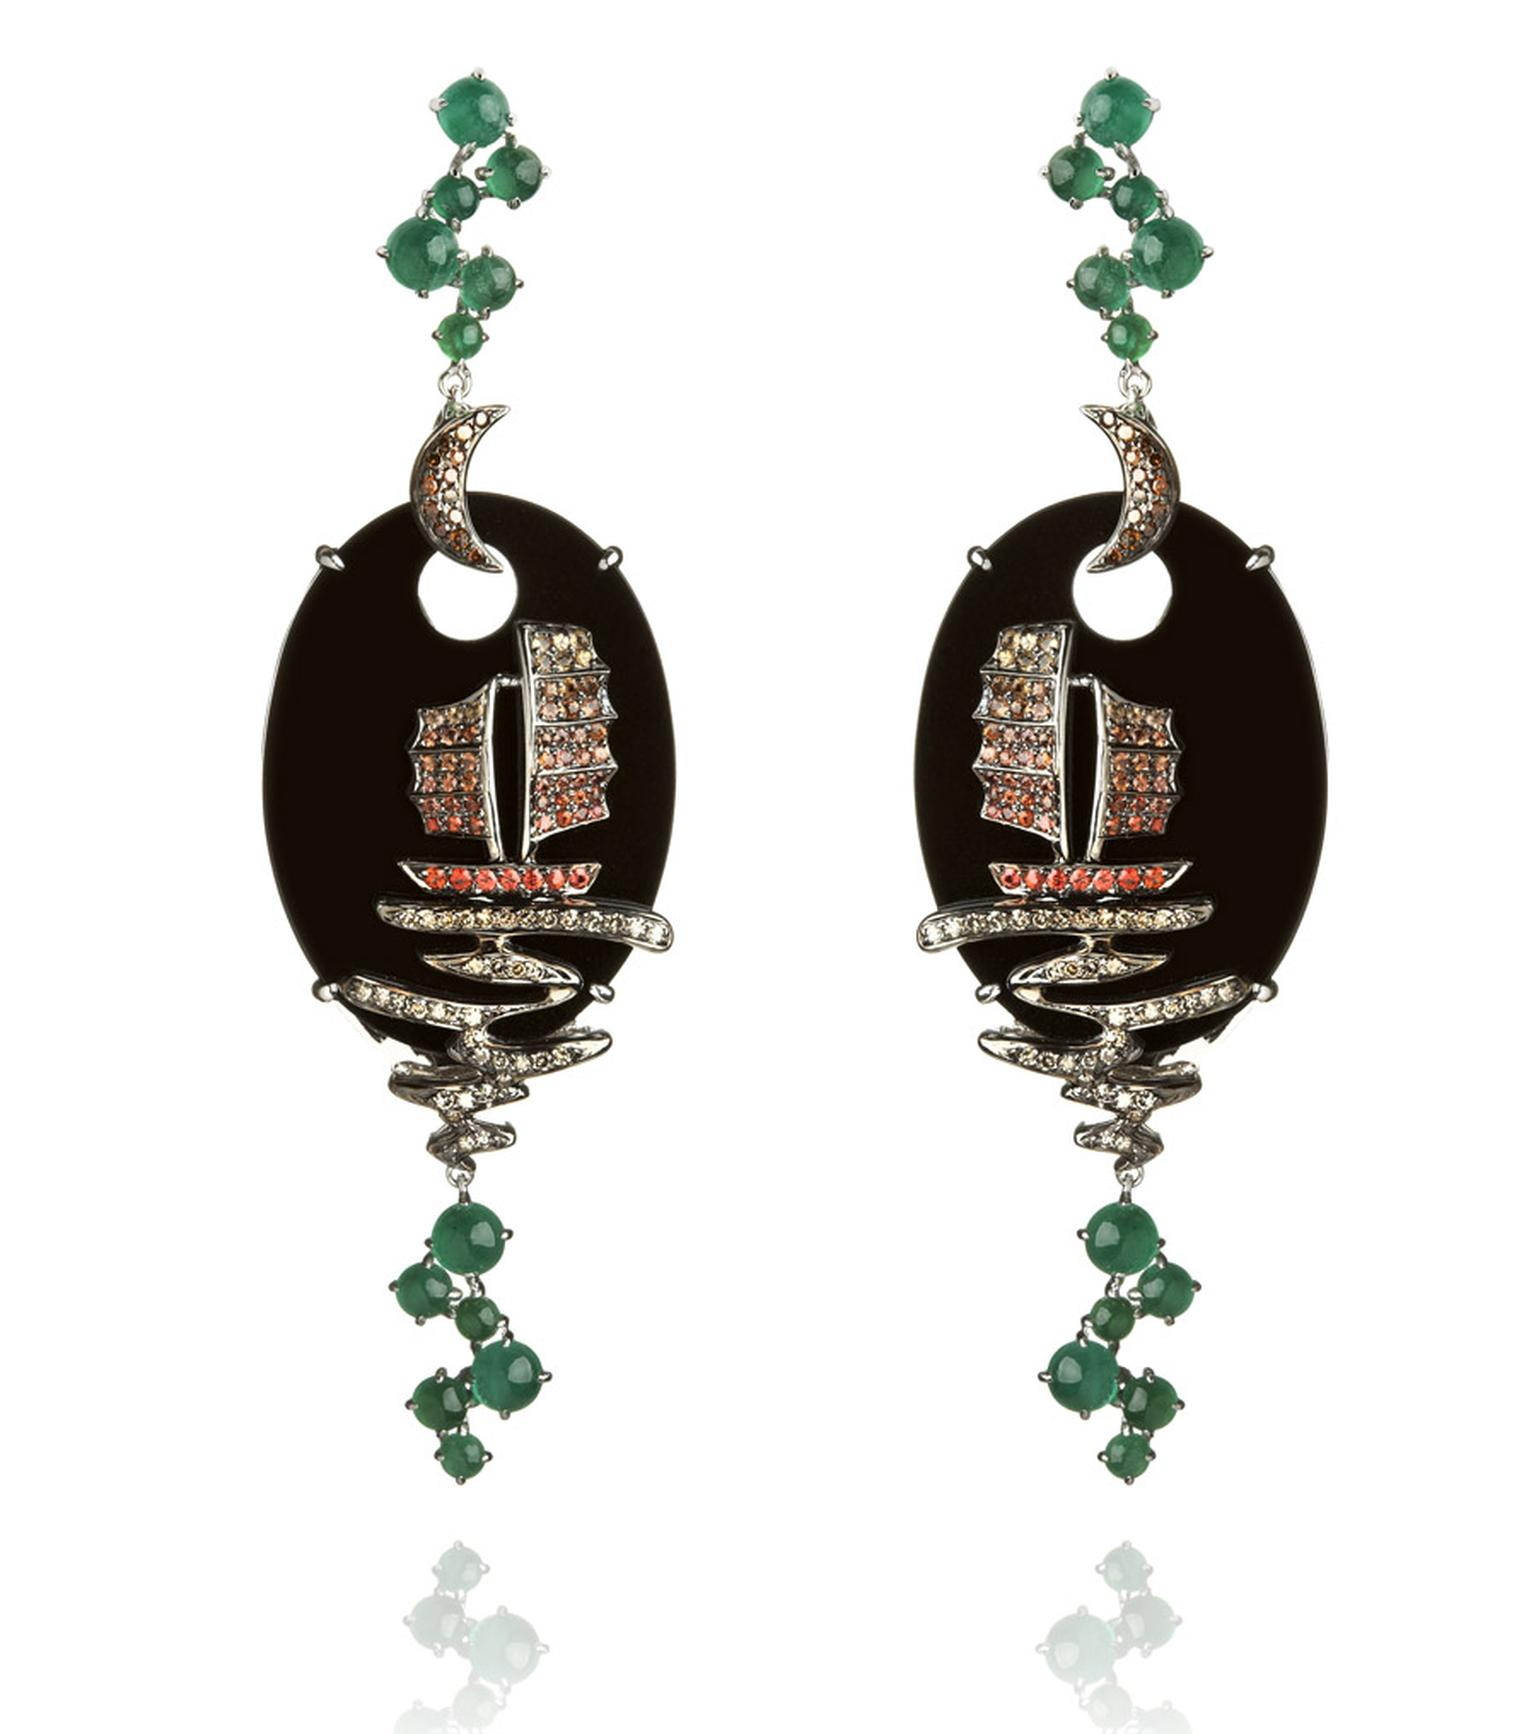 Wendy-Yue-Fantasie-18ct-white-gold--diamond-sapphire-and-emerald-Night-Ship-earrings-By-Wendy-Yue-for--Annnoushka.jpg